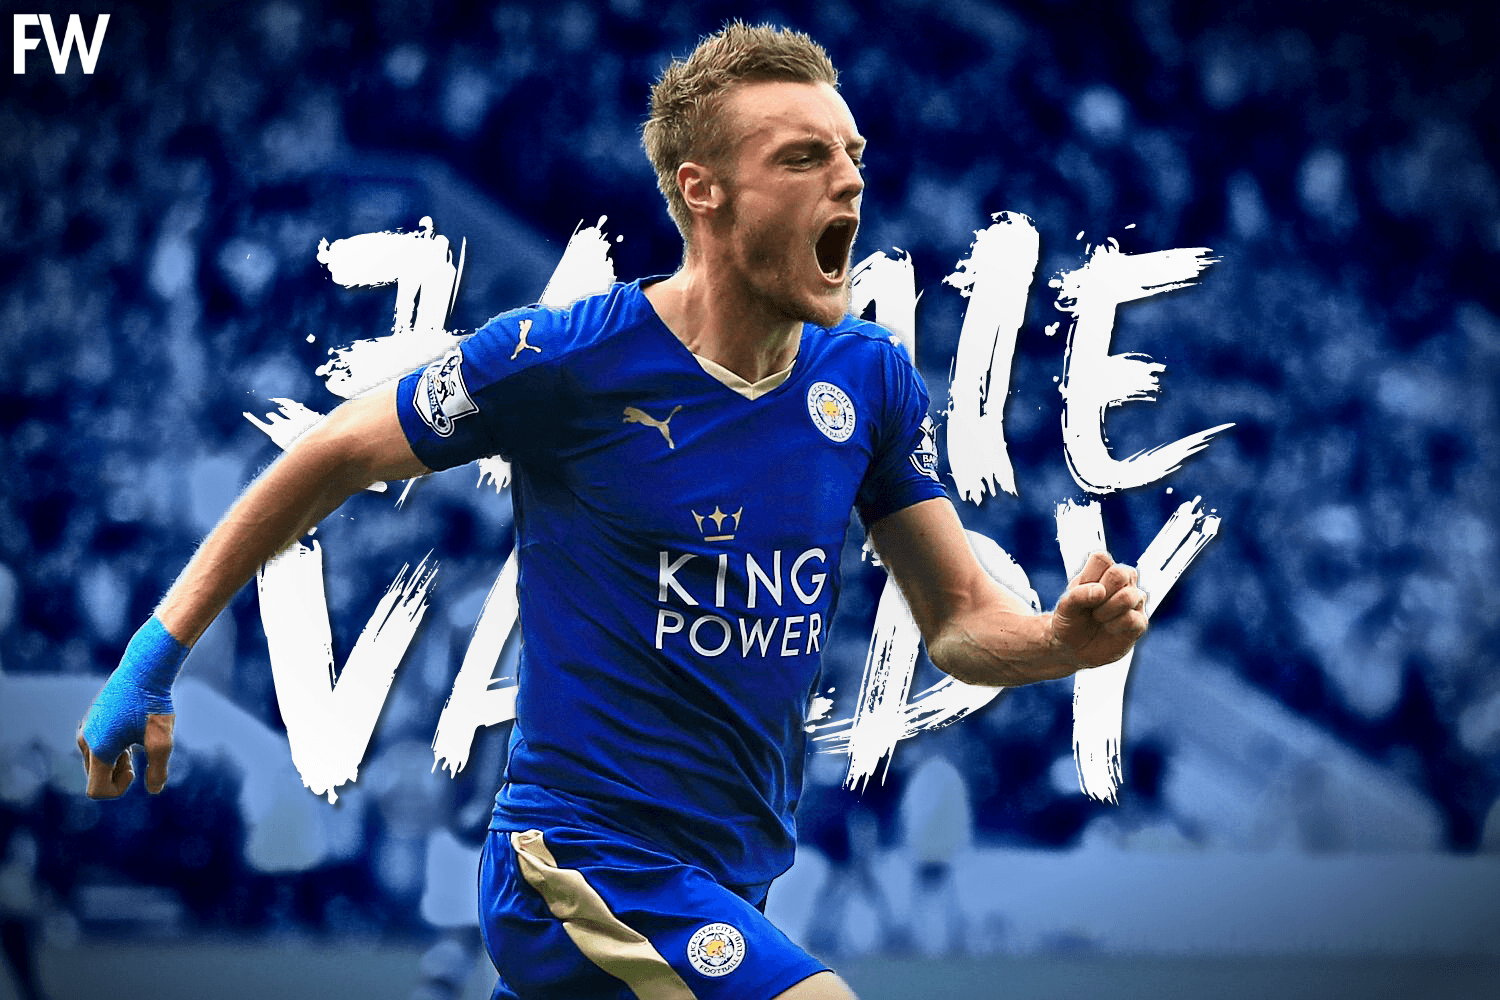 Jamie Vardy Wallpaper by FootyWallpapers on DeviantArt